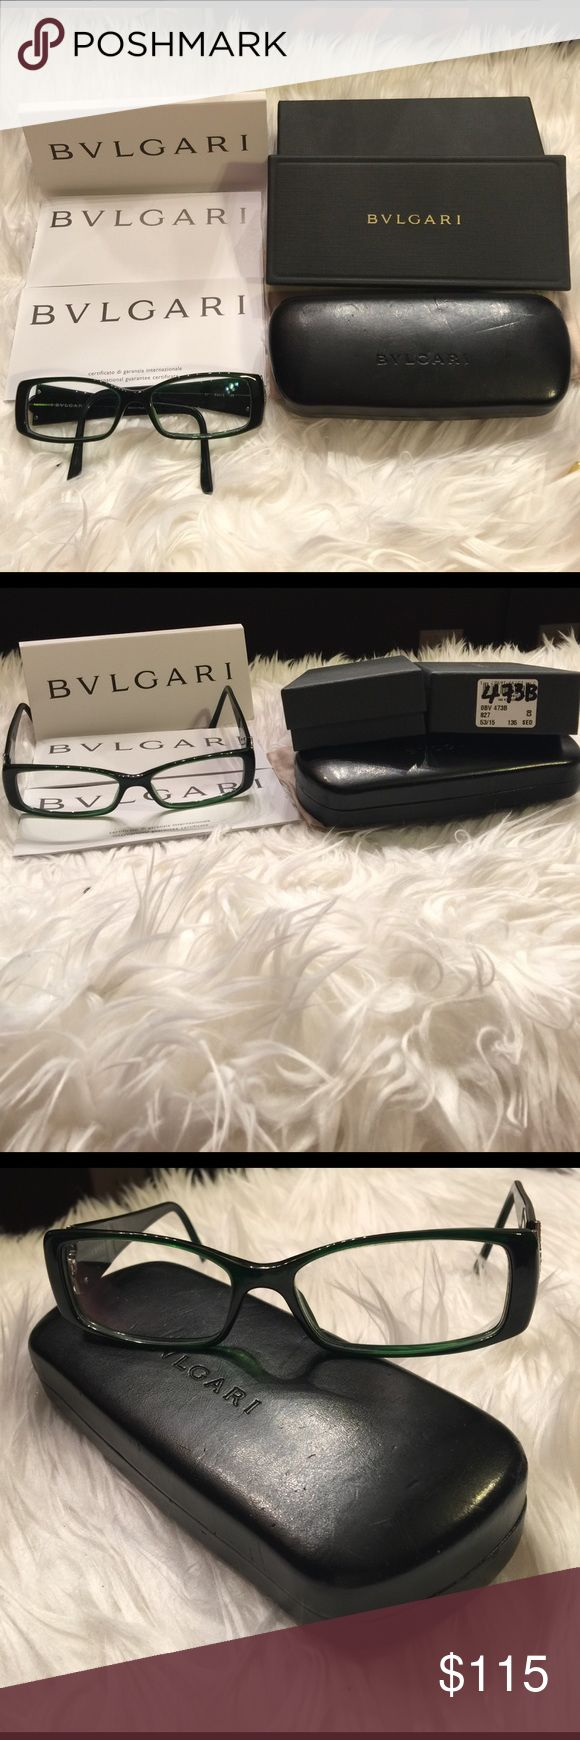 GENTLY USED BVLGARI GLASSES GENTLY USED BVLGARI GLASSES, COME W CASE, BOX,  DUST POCKET, AND INTERNATIONAL GUARANTEE CERTIFICATE BOOKLET.  BOUGHT THIS IN LAS VEGAS.  YOU CAN TURN THIS INTO PRESCRIPTION GLASSES IF YOU TAKE THEM TO HAVE IT DONE.  STILL IN EXCELLENT CONDITION.  MISSING 3 STONES ON THE LEFT SIDE, OTHER THAN THAT IN GREAT CONDITION.  GOT LOTS OF COMPLIMENTS ON THIS GLASSES EVERYTIME I WORE IT. BVLGARI Accessories Glasses